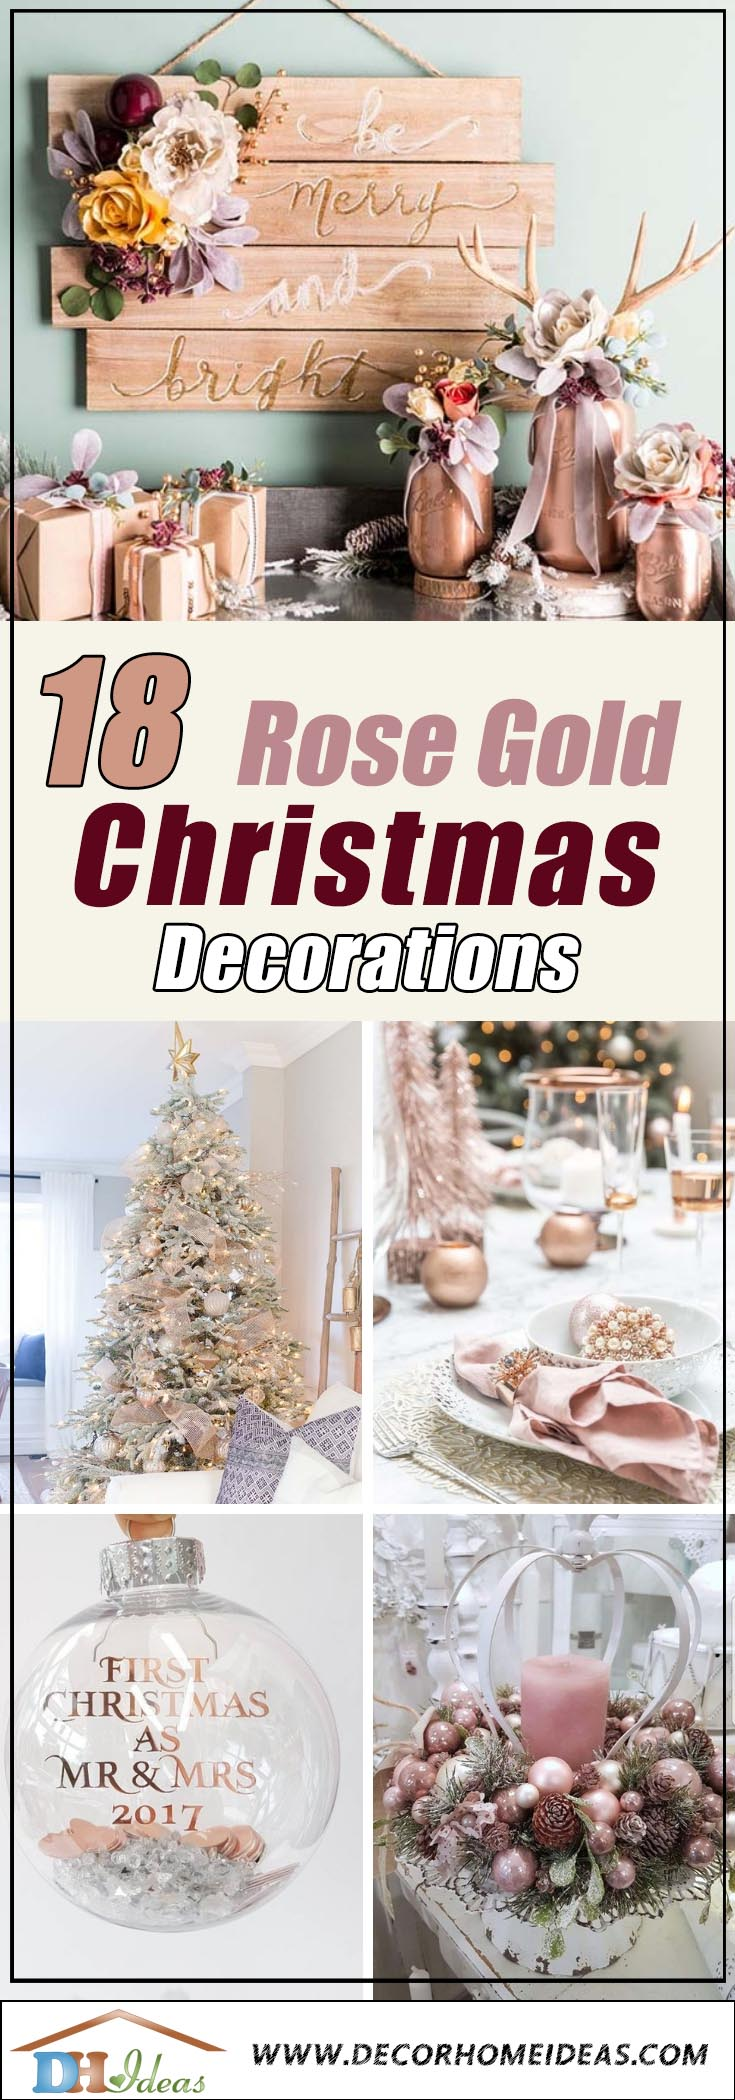 20 Unique Rose Gold Christmas Decorations Decor Home Ideas